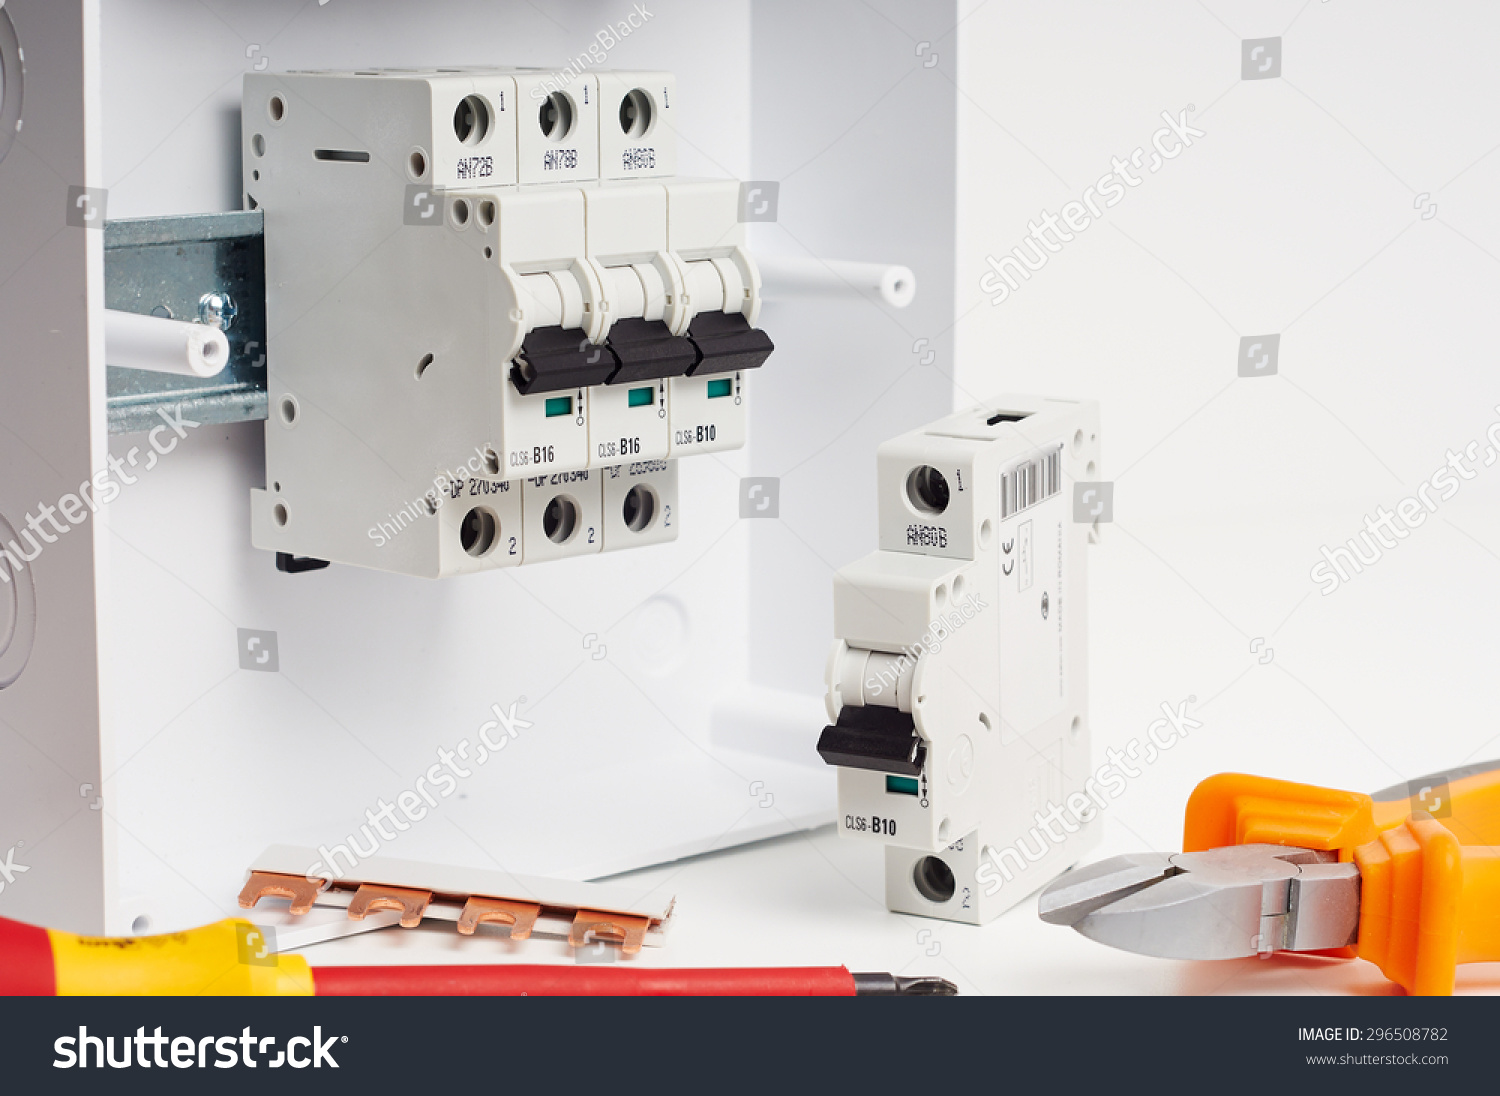 Pretty How To Install An Electrical Panel Ideas - Electrical Circuit ...